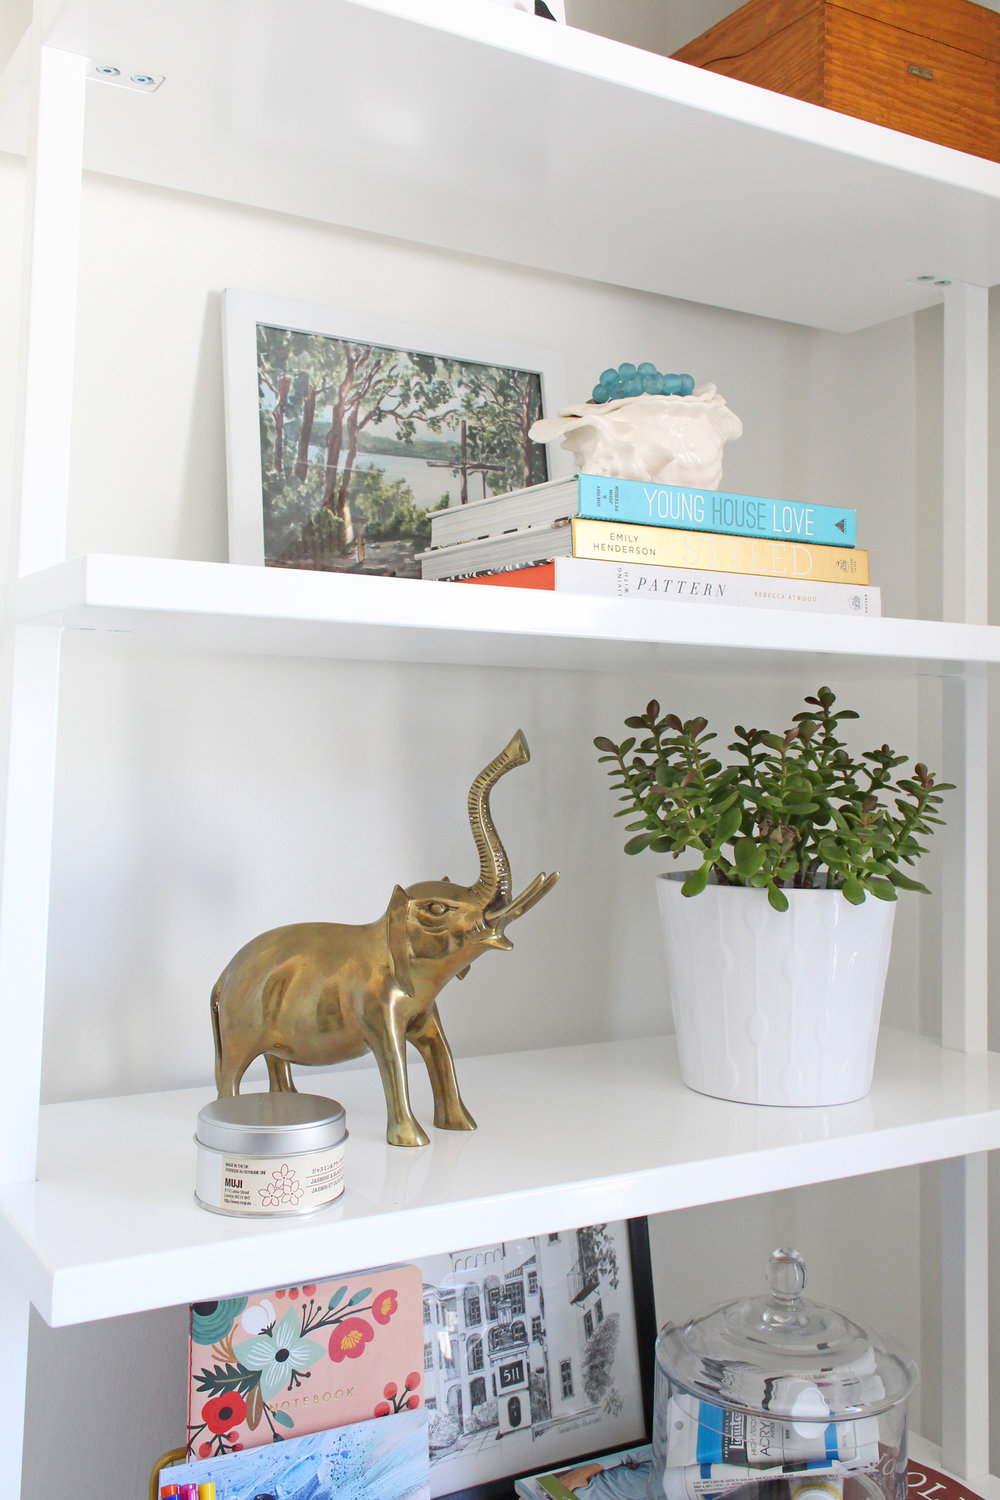 Vintage brass elephant and a jade plant on bookshelf.